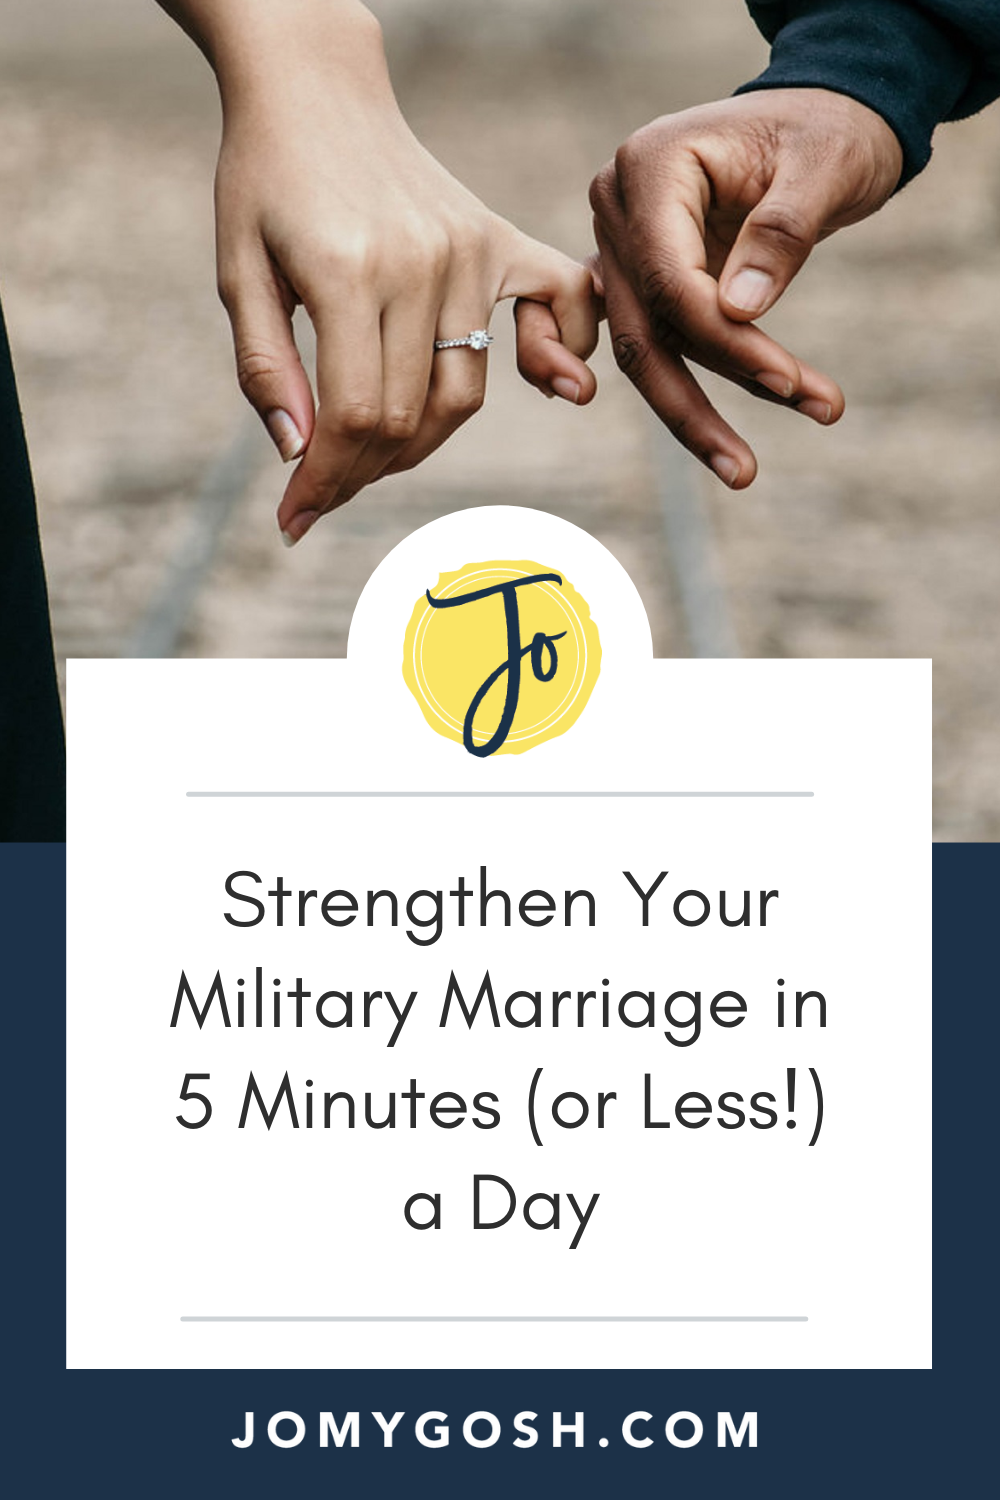 Most of these ideas can be done in less than 5 minutes. Love the idea of being intentionally about making my marriage stronger! #militaryspouse #milspouse #militarywife #armywife #airforcewife #marinewife #navywife #relationships #relationship #longdistance #longdistancerelationship #ldr #ldrcouples